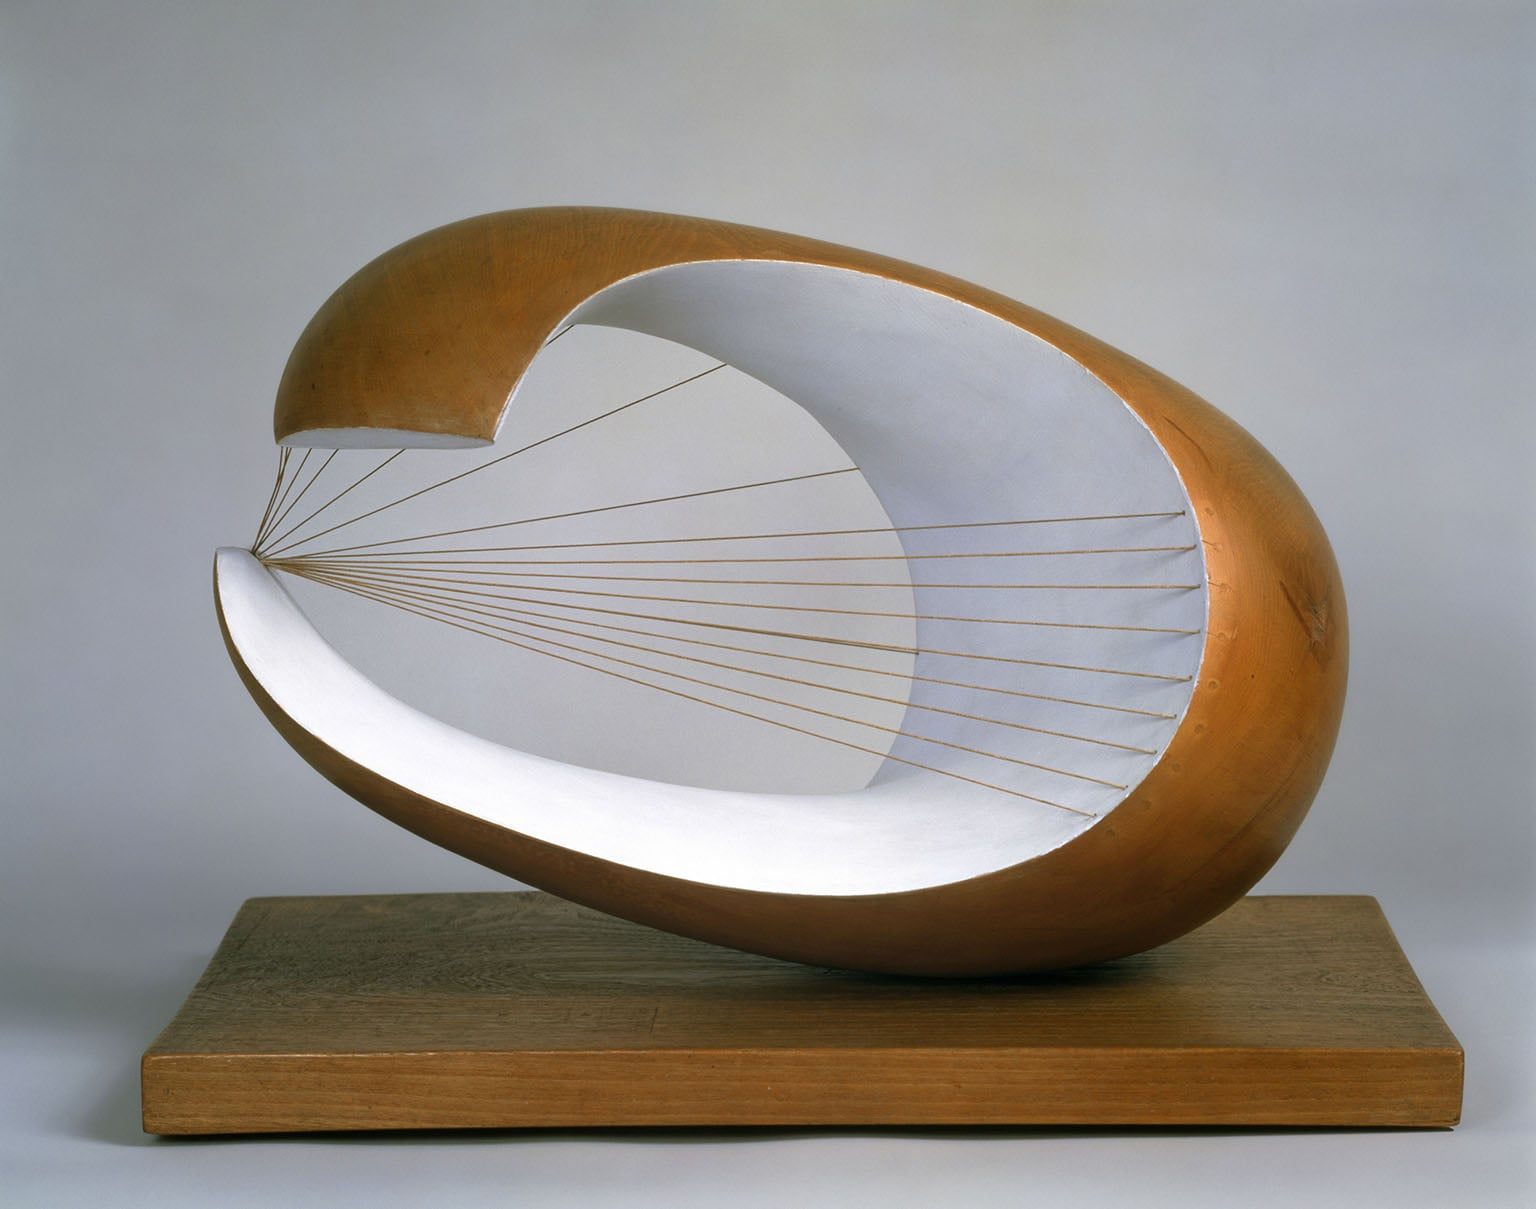 Wave, 1943 – 1944, Scottish National Gallery of Modern Art. On loan to Tate Britain. - © Bowness, Hepworth Estate. Photo: Antonia Reeve